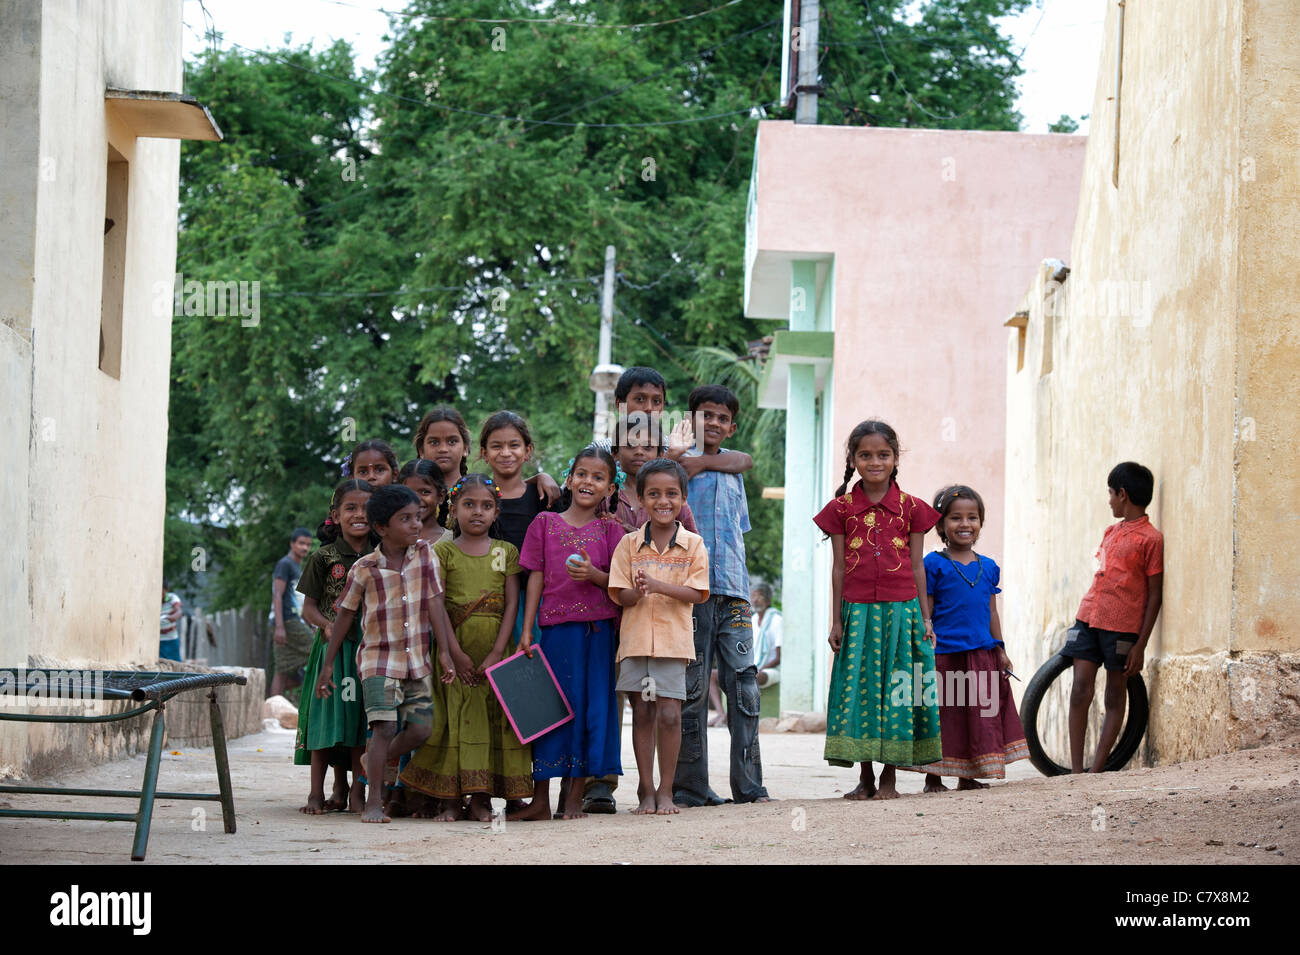 Happy young rural Indian village children smiling in the street. Andhra Pradesh, India - Stock Image